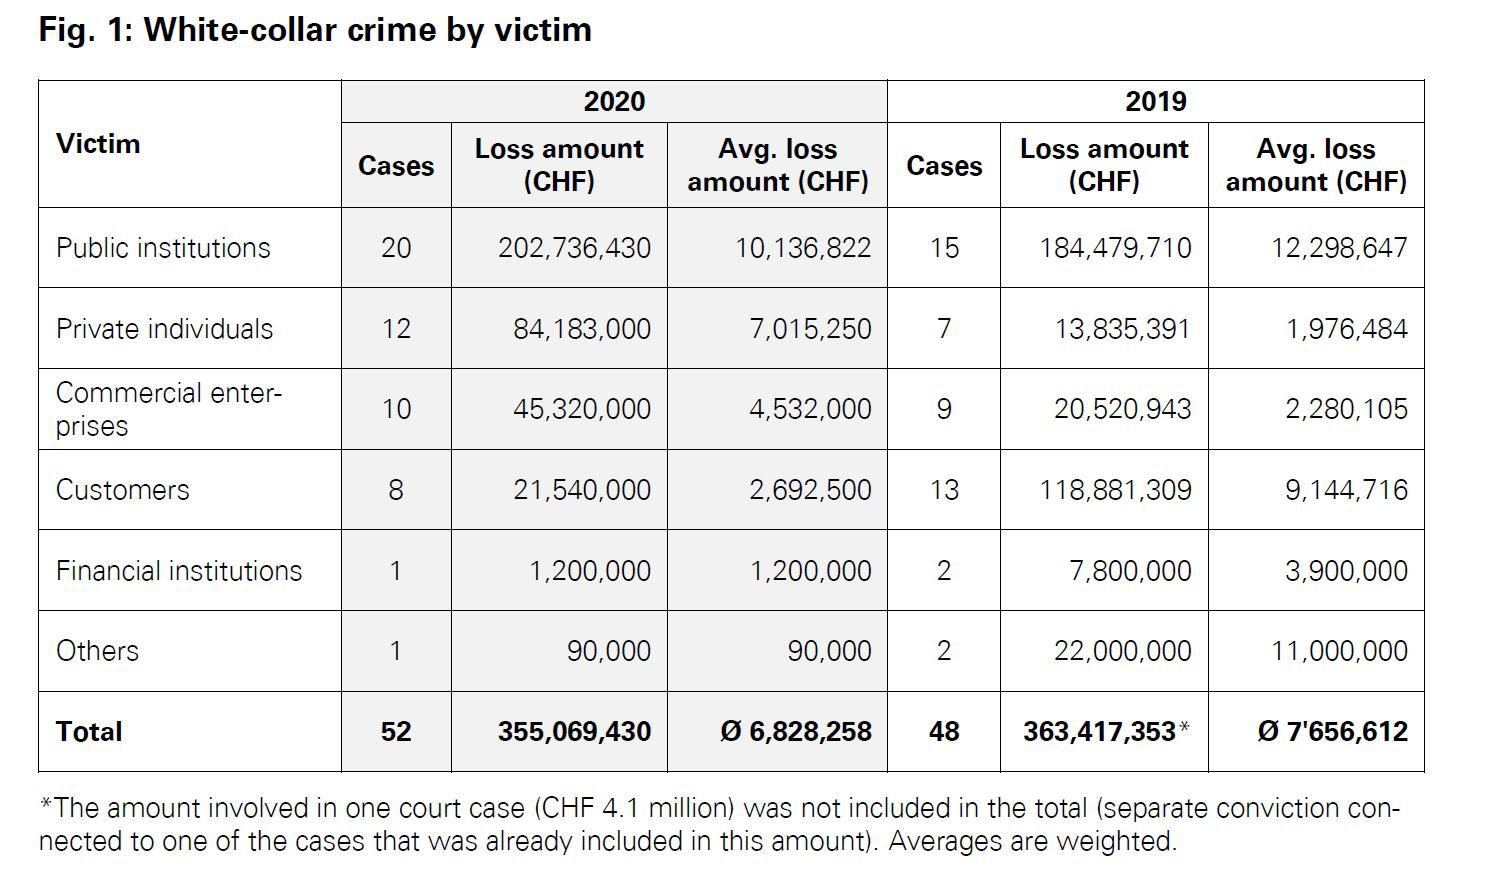 White-collar crime by victim